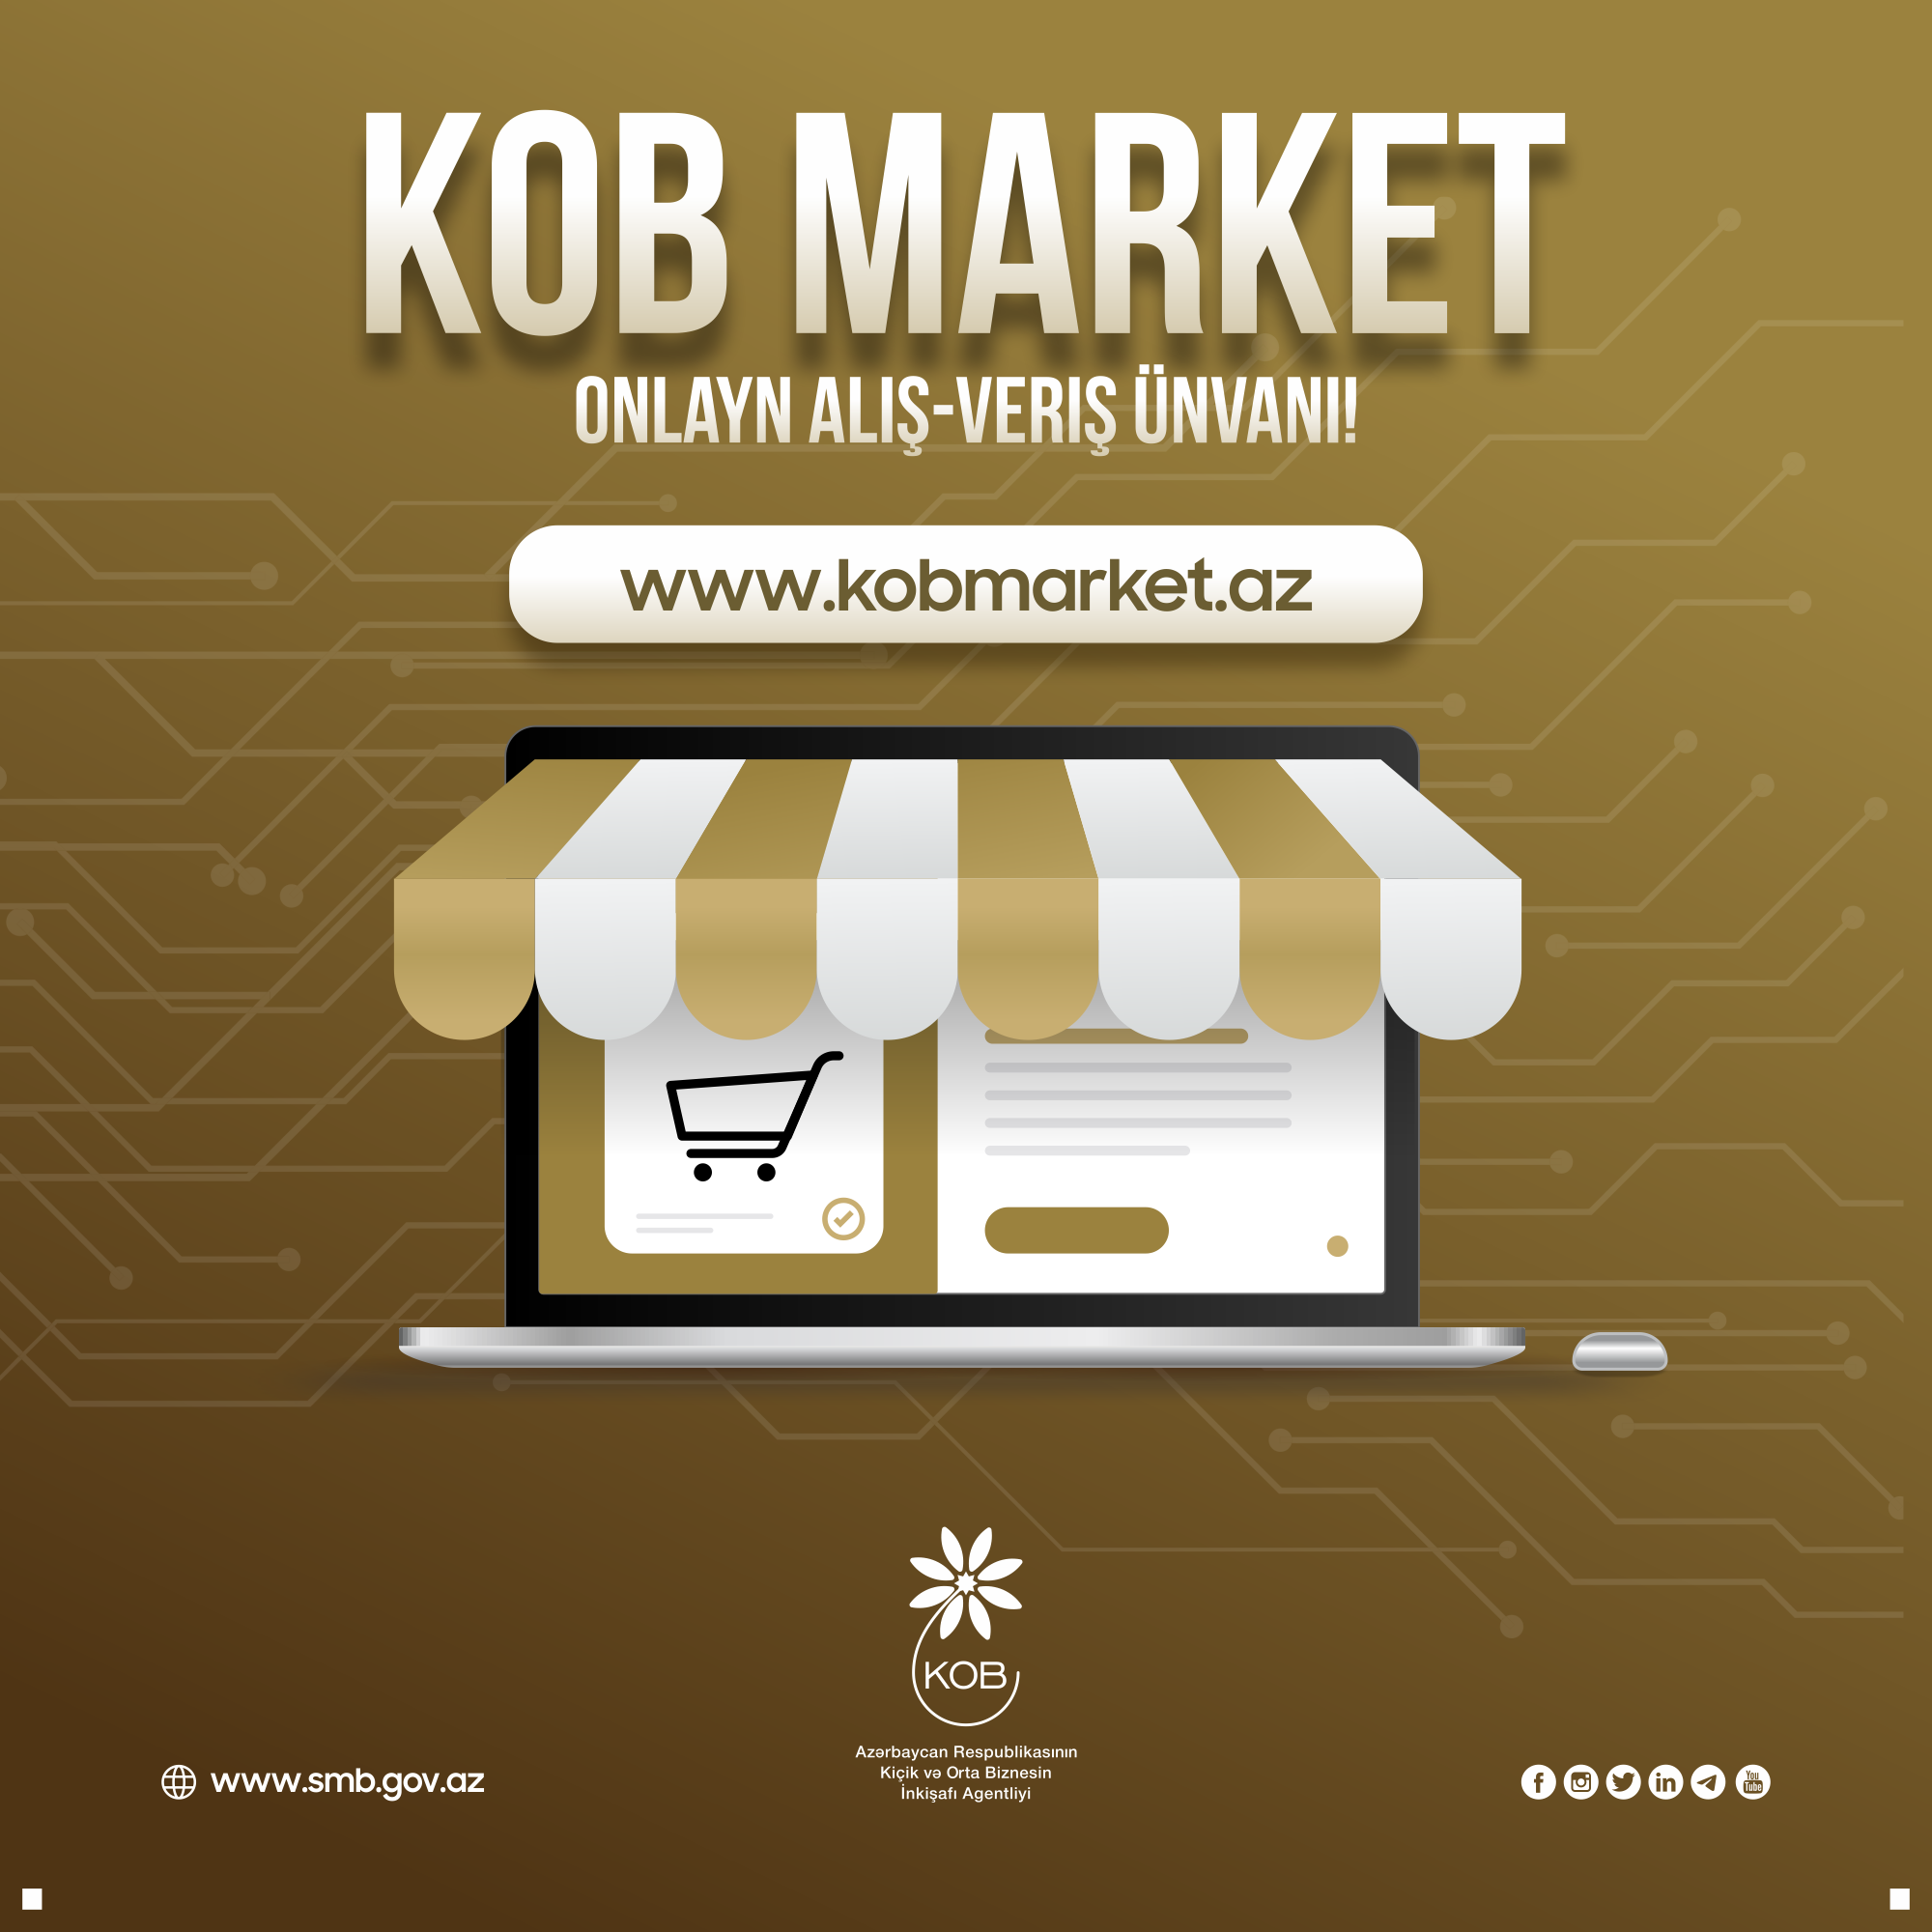 An online sales portal for micro and small businesses www.kobmarket.az has been launched